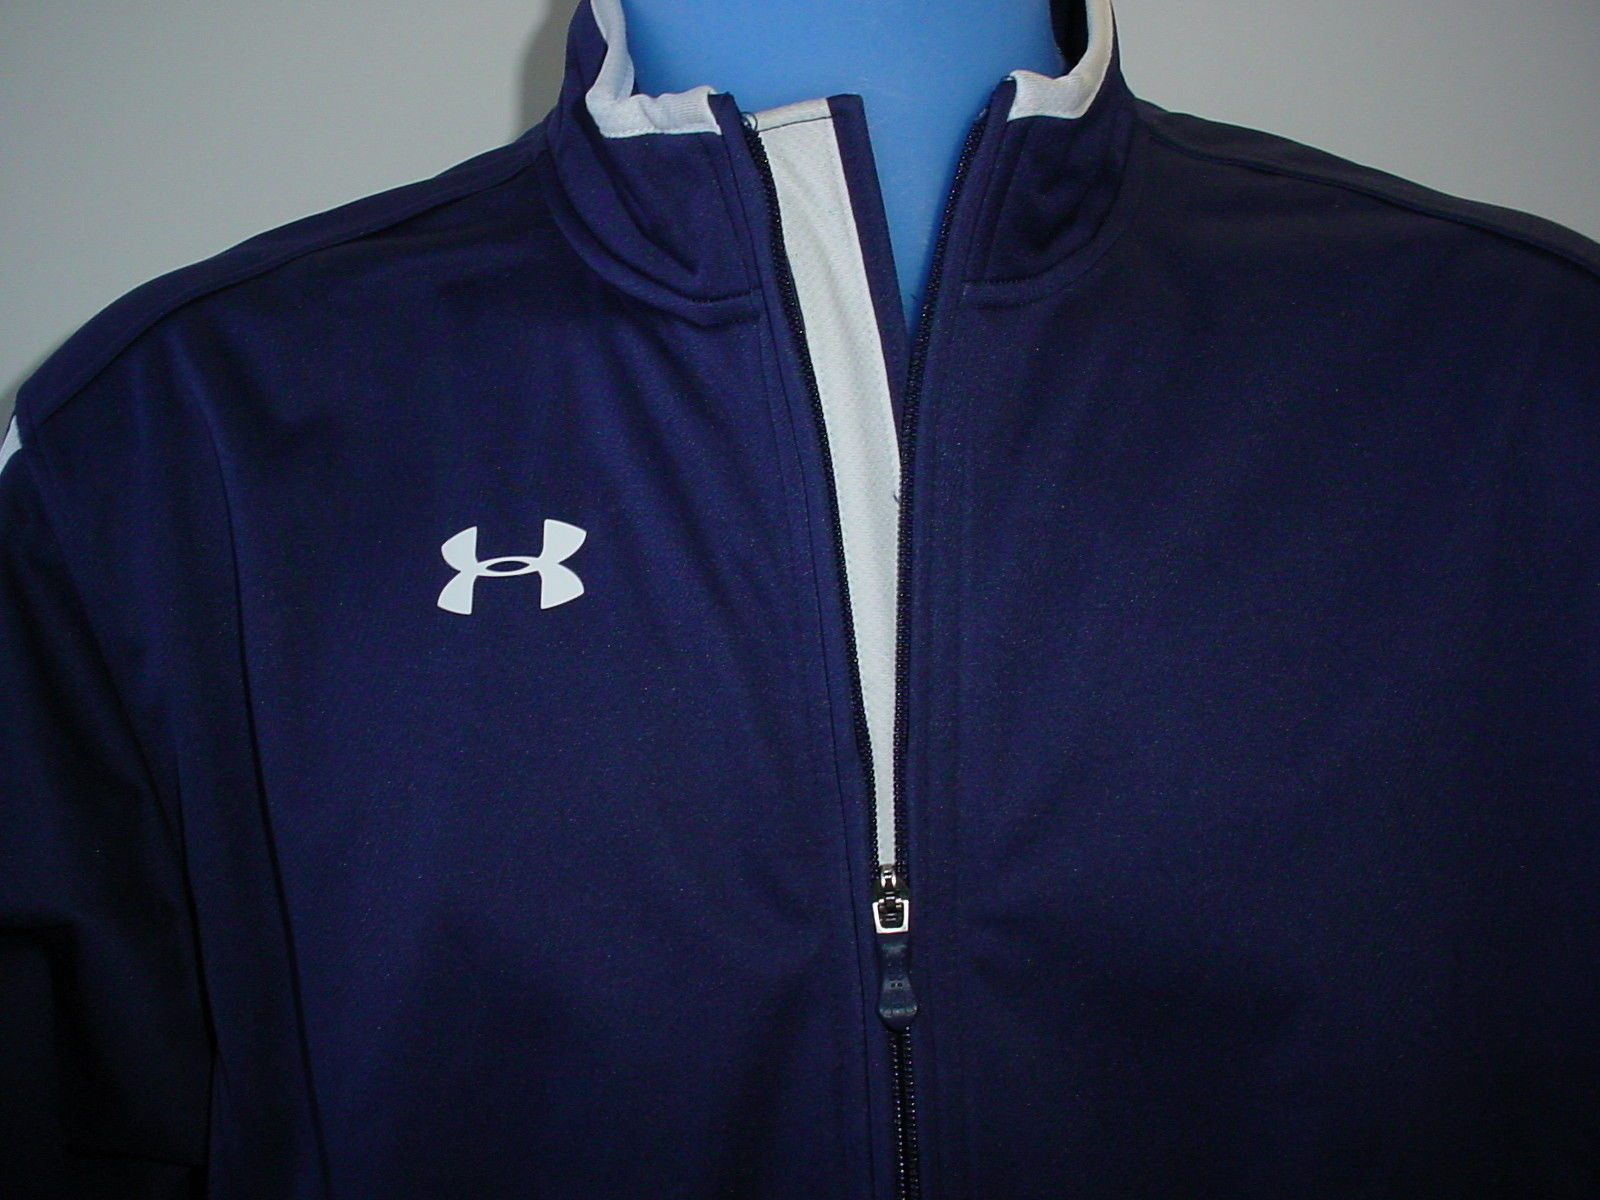 under armour golf blue bud light hotel new and 15 similar items